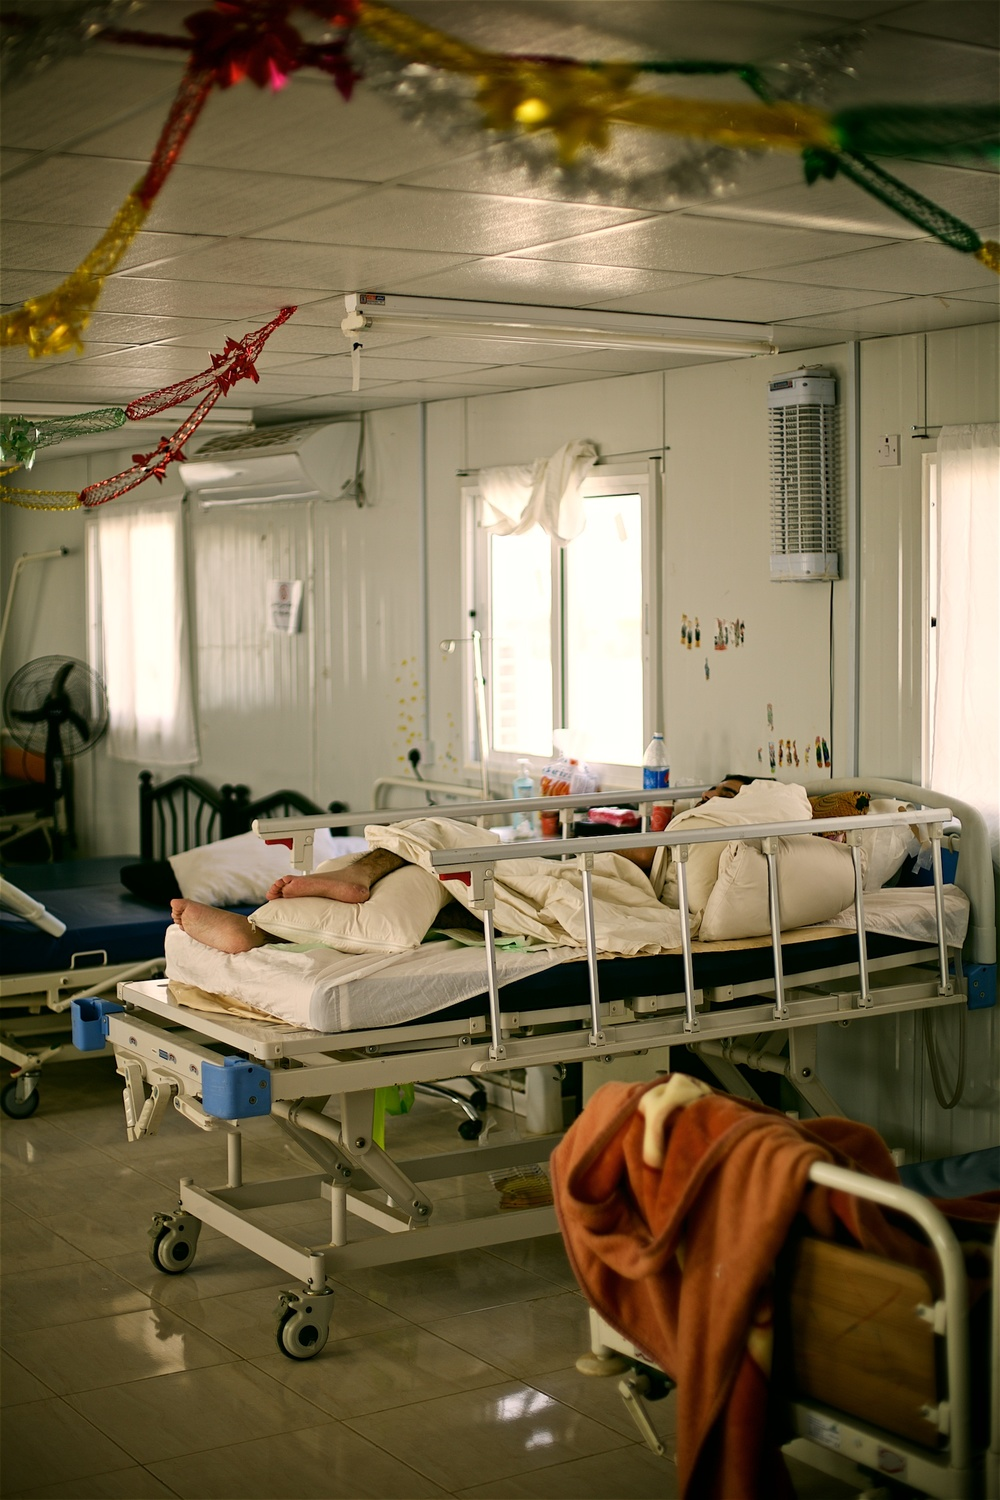 jordan-msf-zaatari-dectors-without-borders-war-hospital-refugee-camp-denis-bosnic-3.jpg